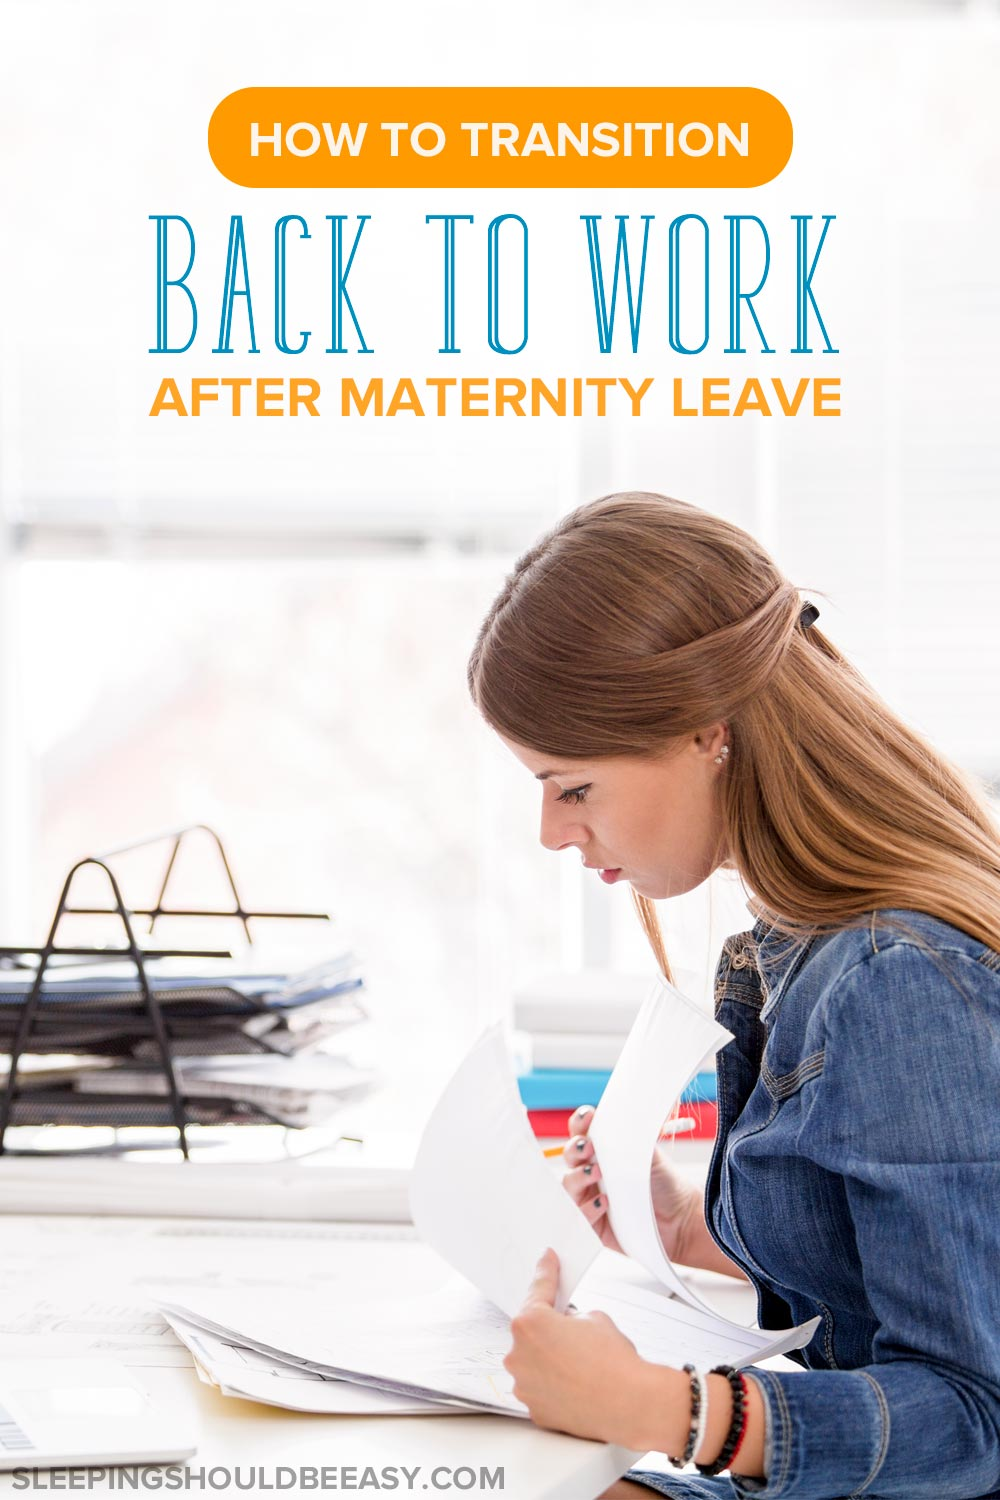 After weeks or months at home with the baby, learn how to cope with going back to work after maternity leave and ease the transition back to work.